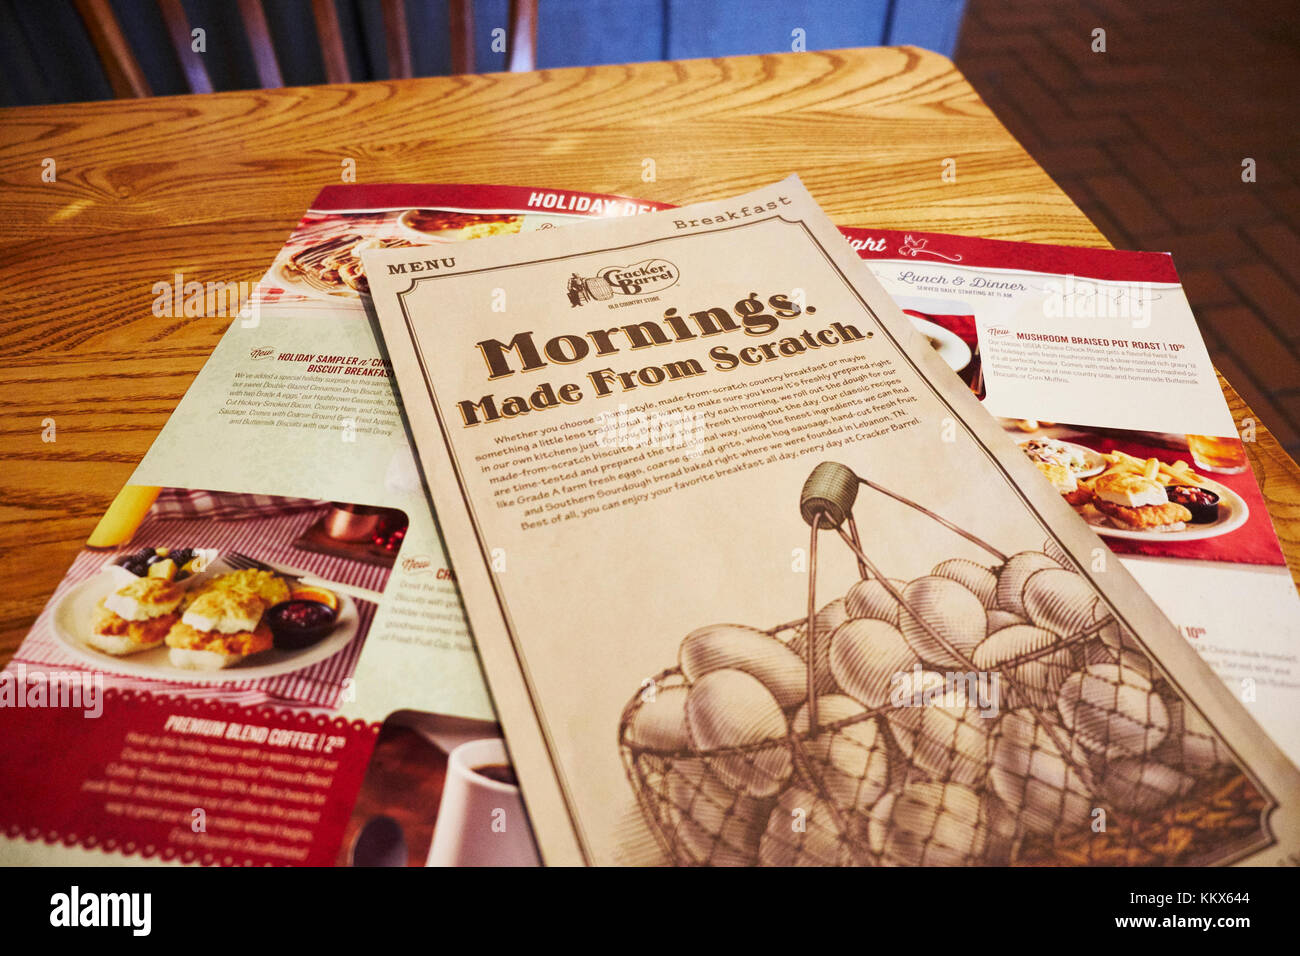 Menu on table for the breakfast meal at Cracker Barrel, Montgomery Alabama, USA. - Stock Image